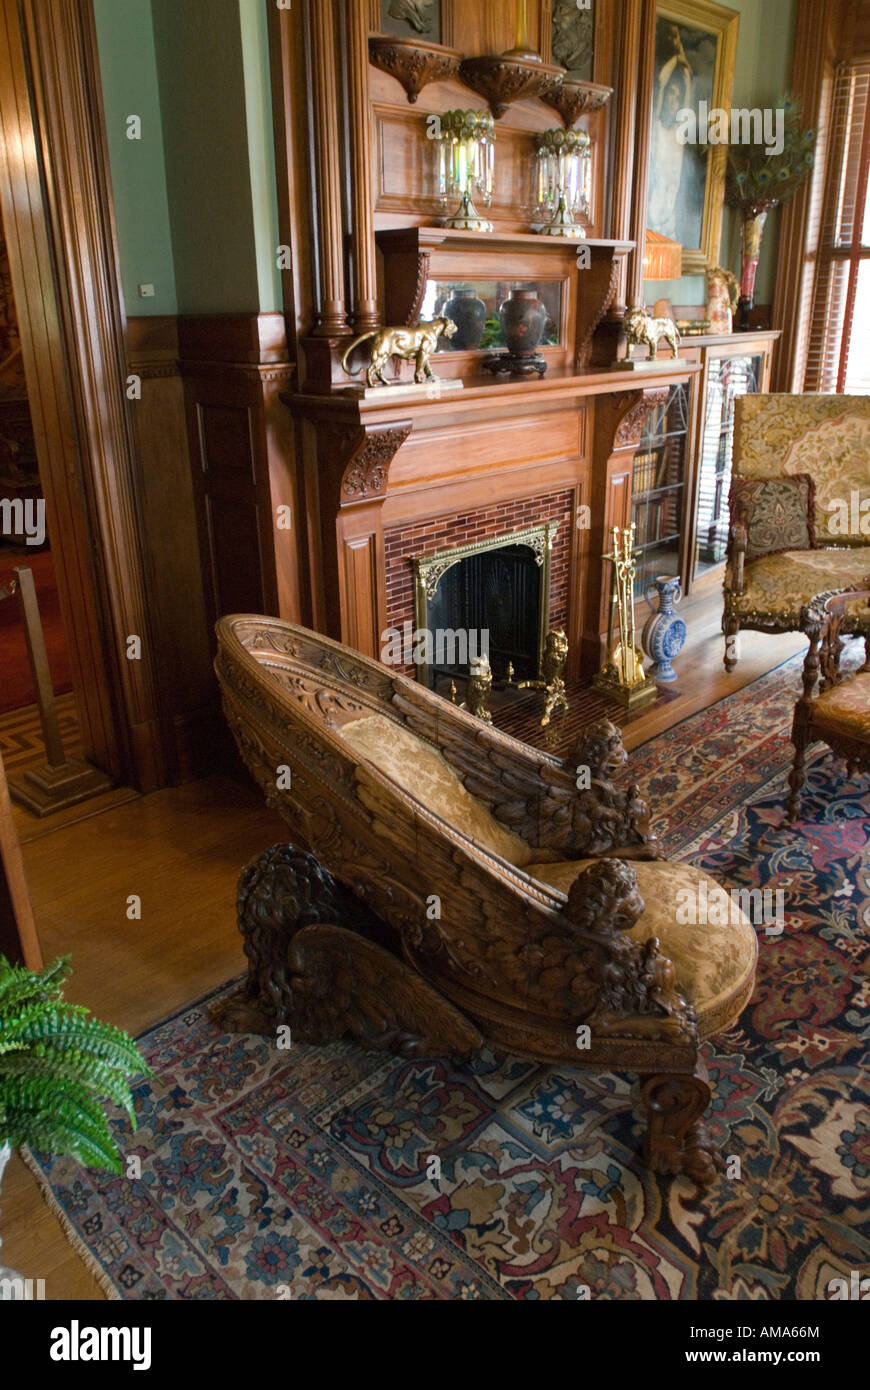 Ornate Carved Furniture On Display At Maymont, The Dooley Mansion In  Richmond, Virginia.